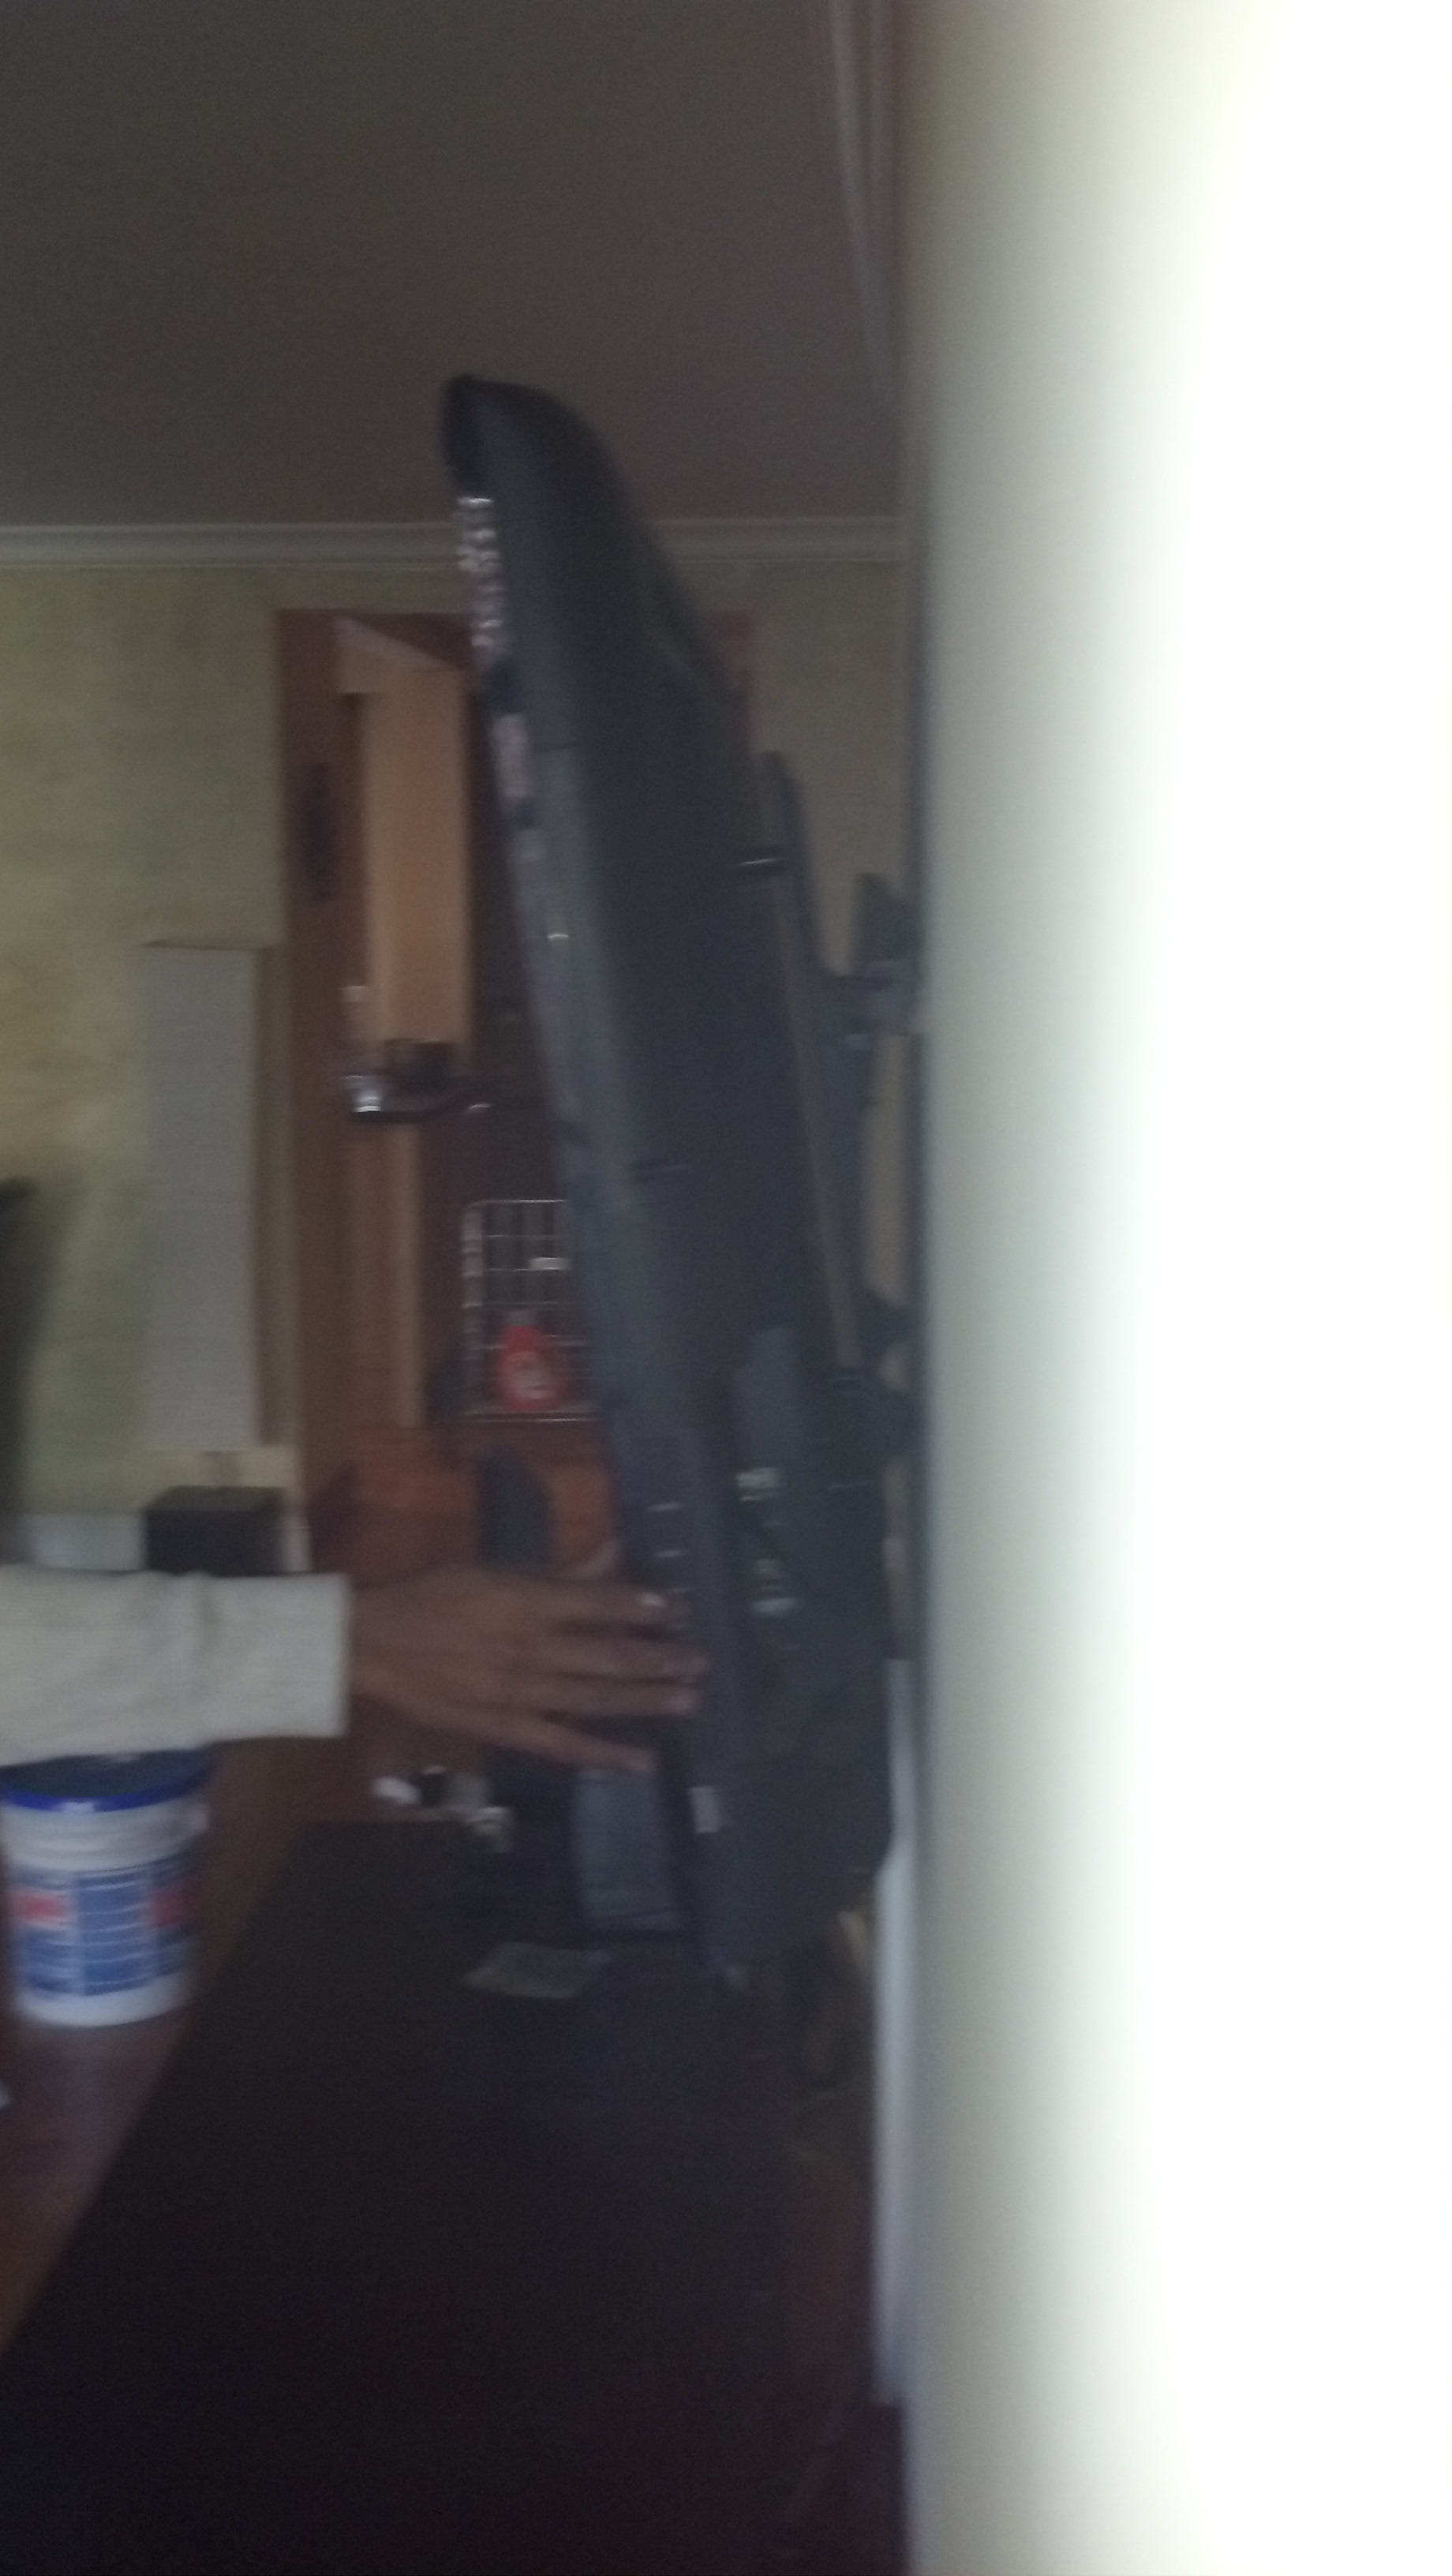 Stamford Ct Tv Mounted On Wall In Apartment Building Home